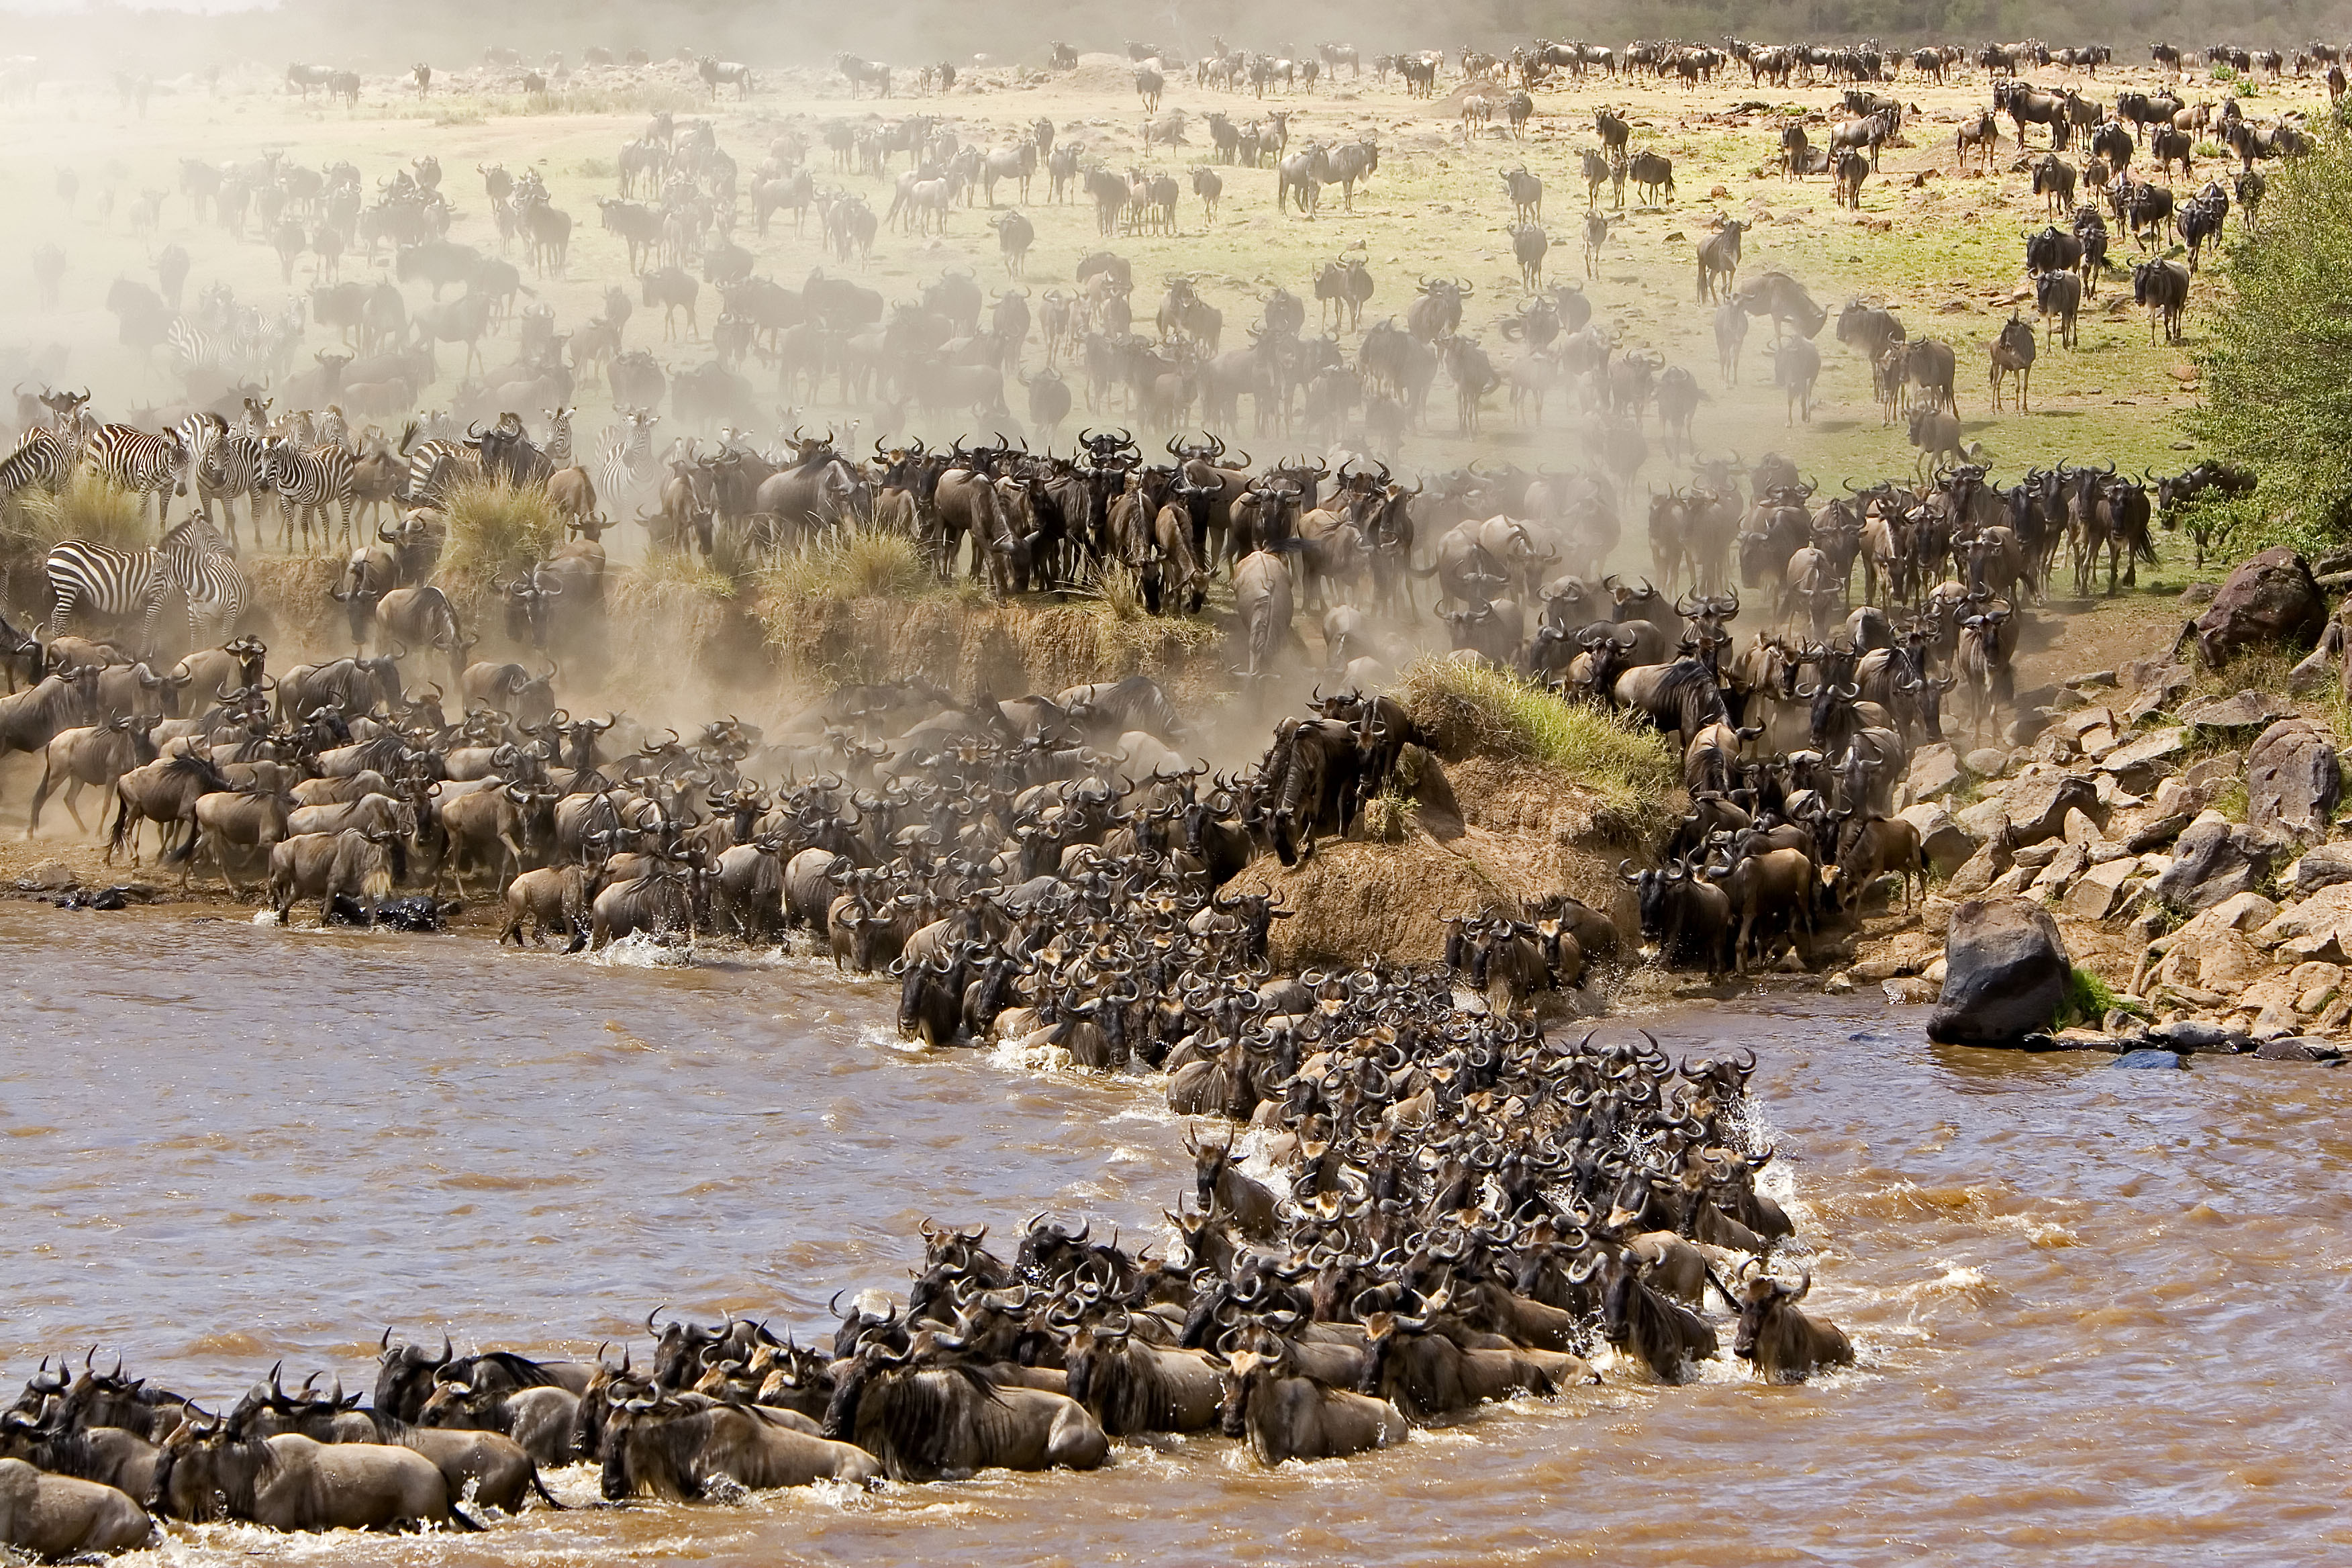 wildebeest Group with 62 items